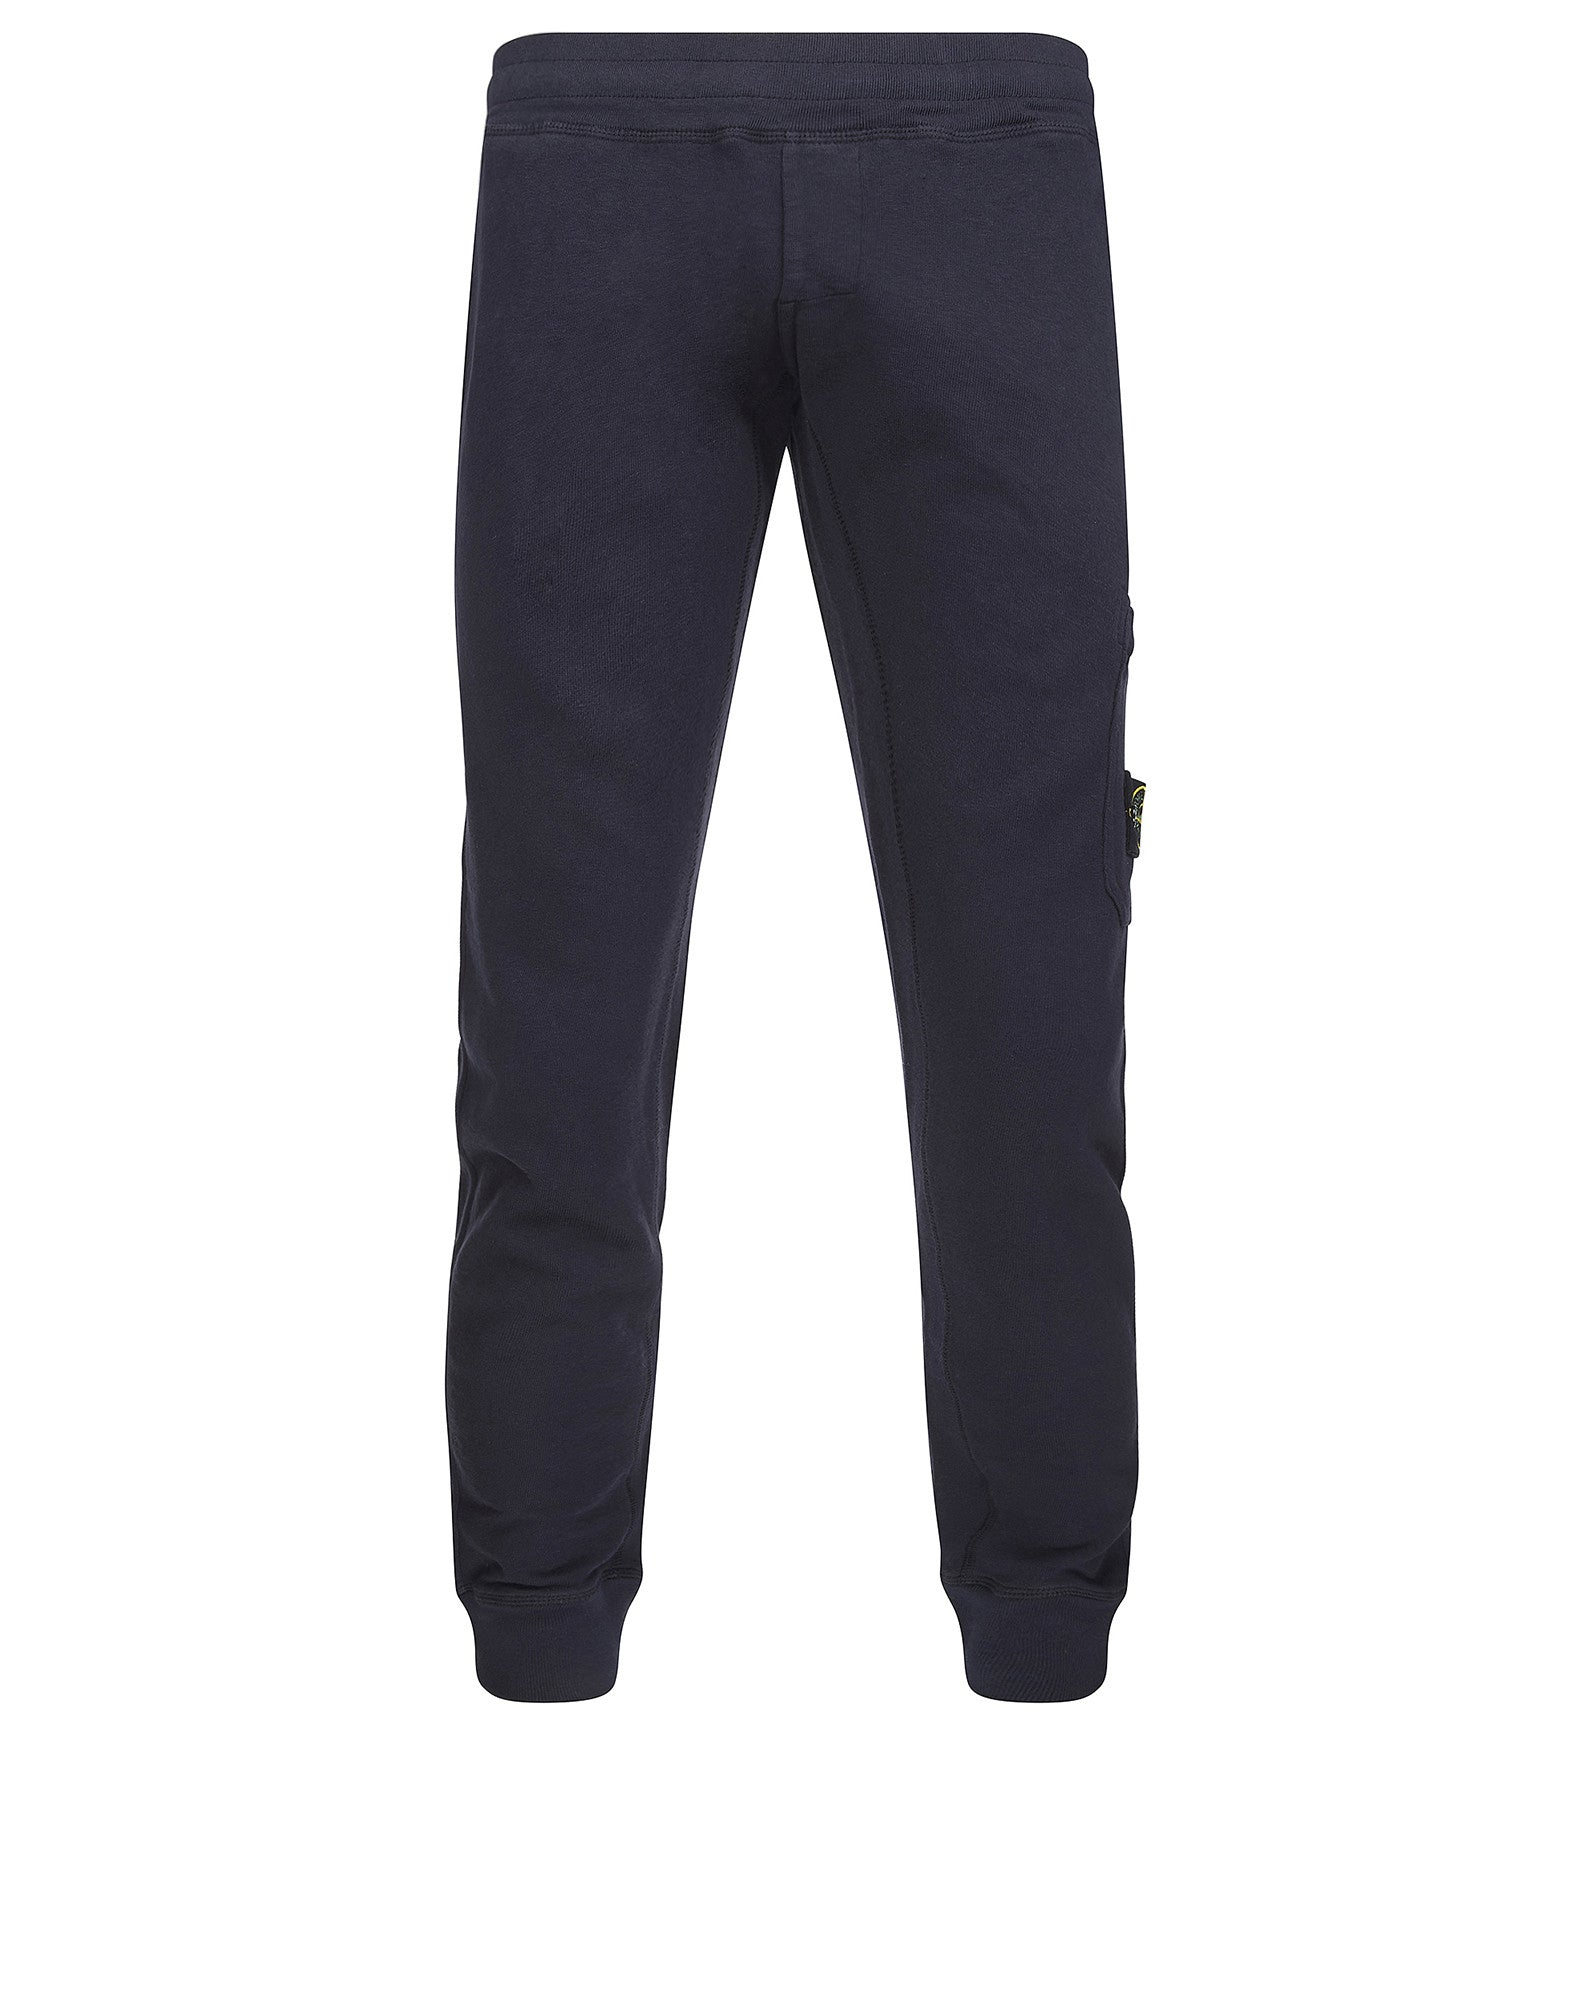 66660 T.CO+OLD FLEECE PANTS in Navy